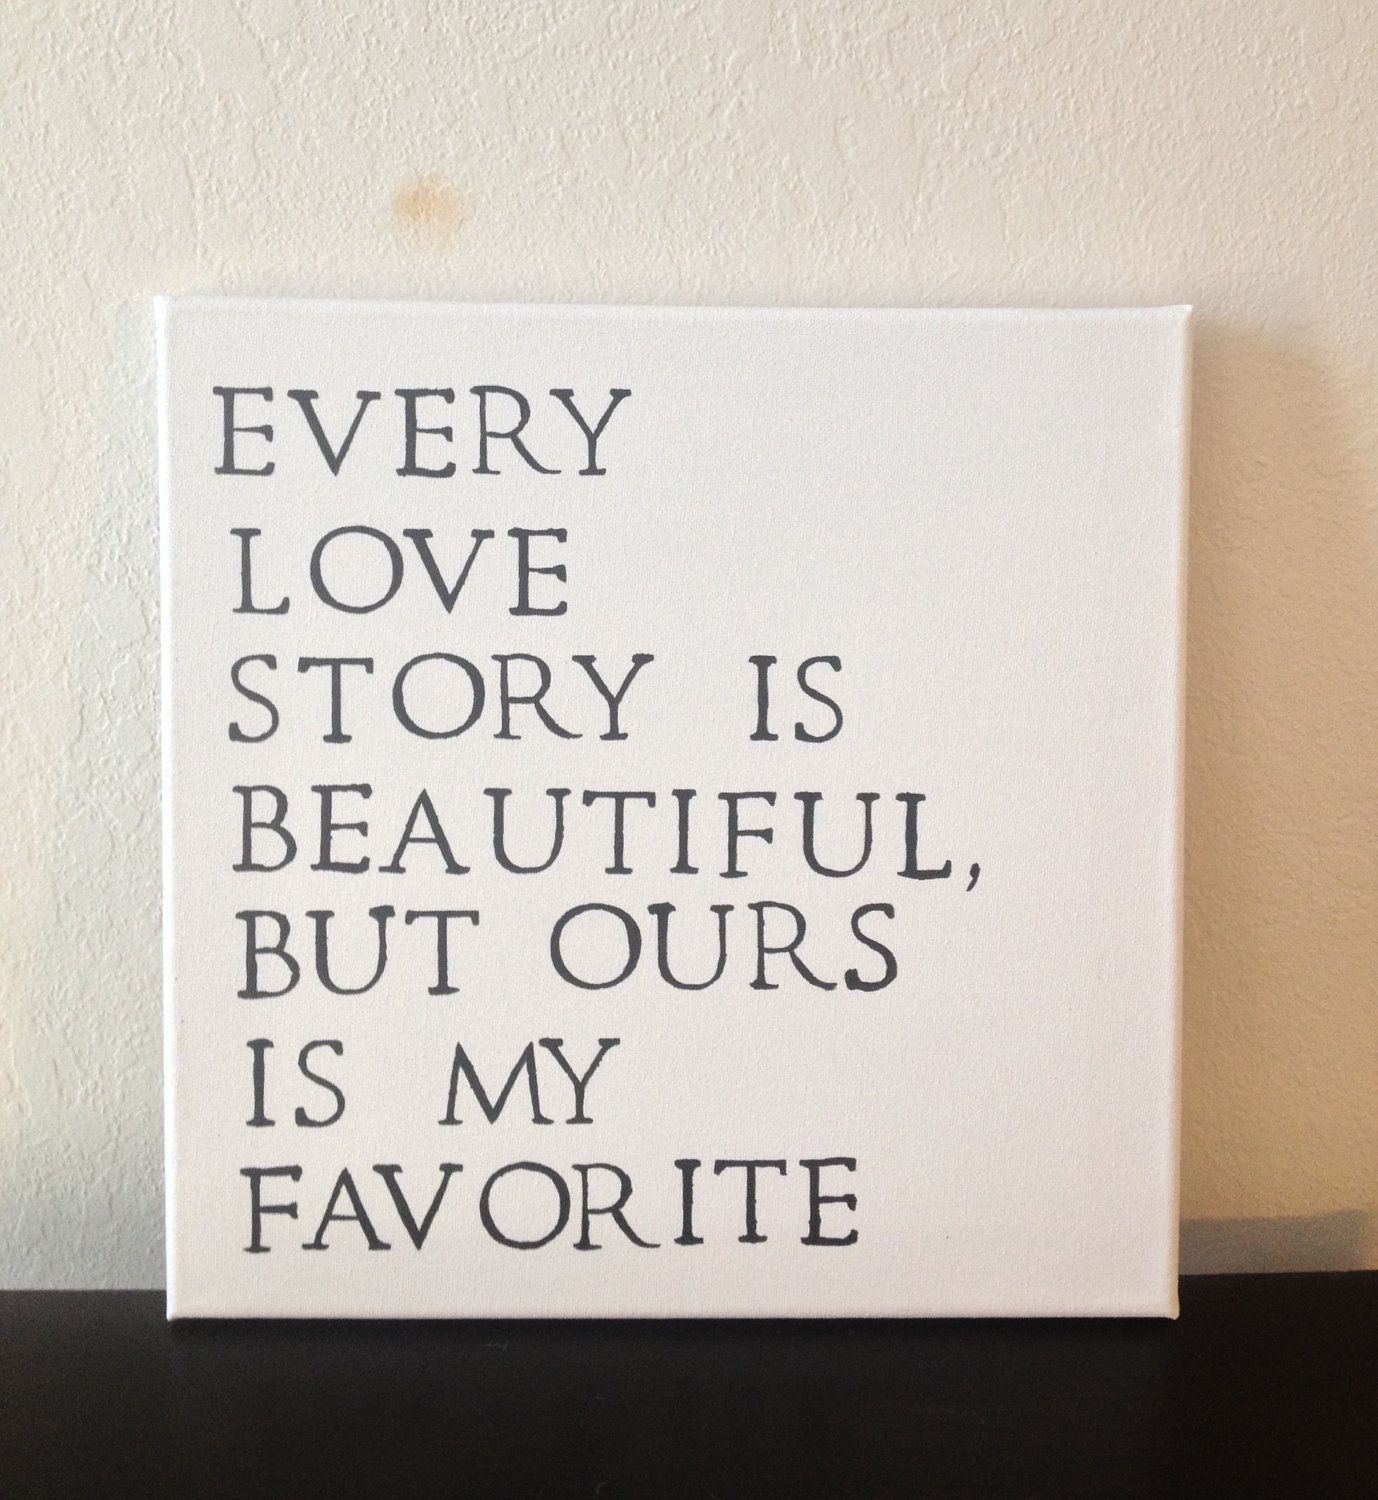 Love Quotes On Canvas 12X12 Quote Canvas  Every Love Story Is Beautiful But Ours Is My